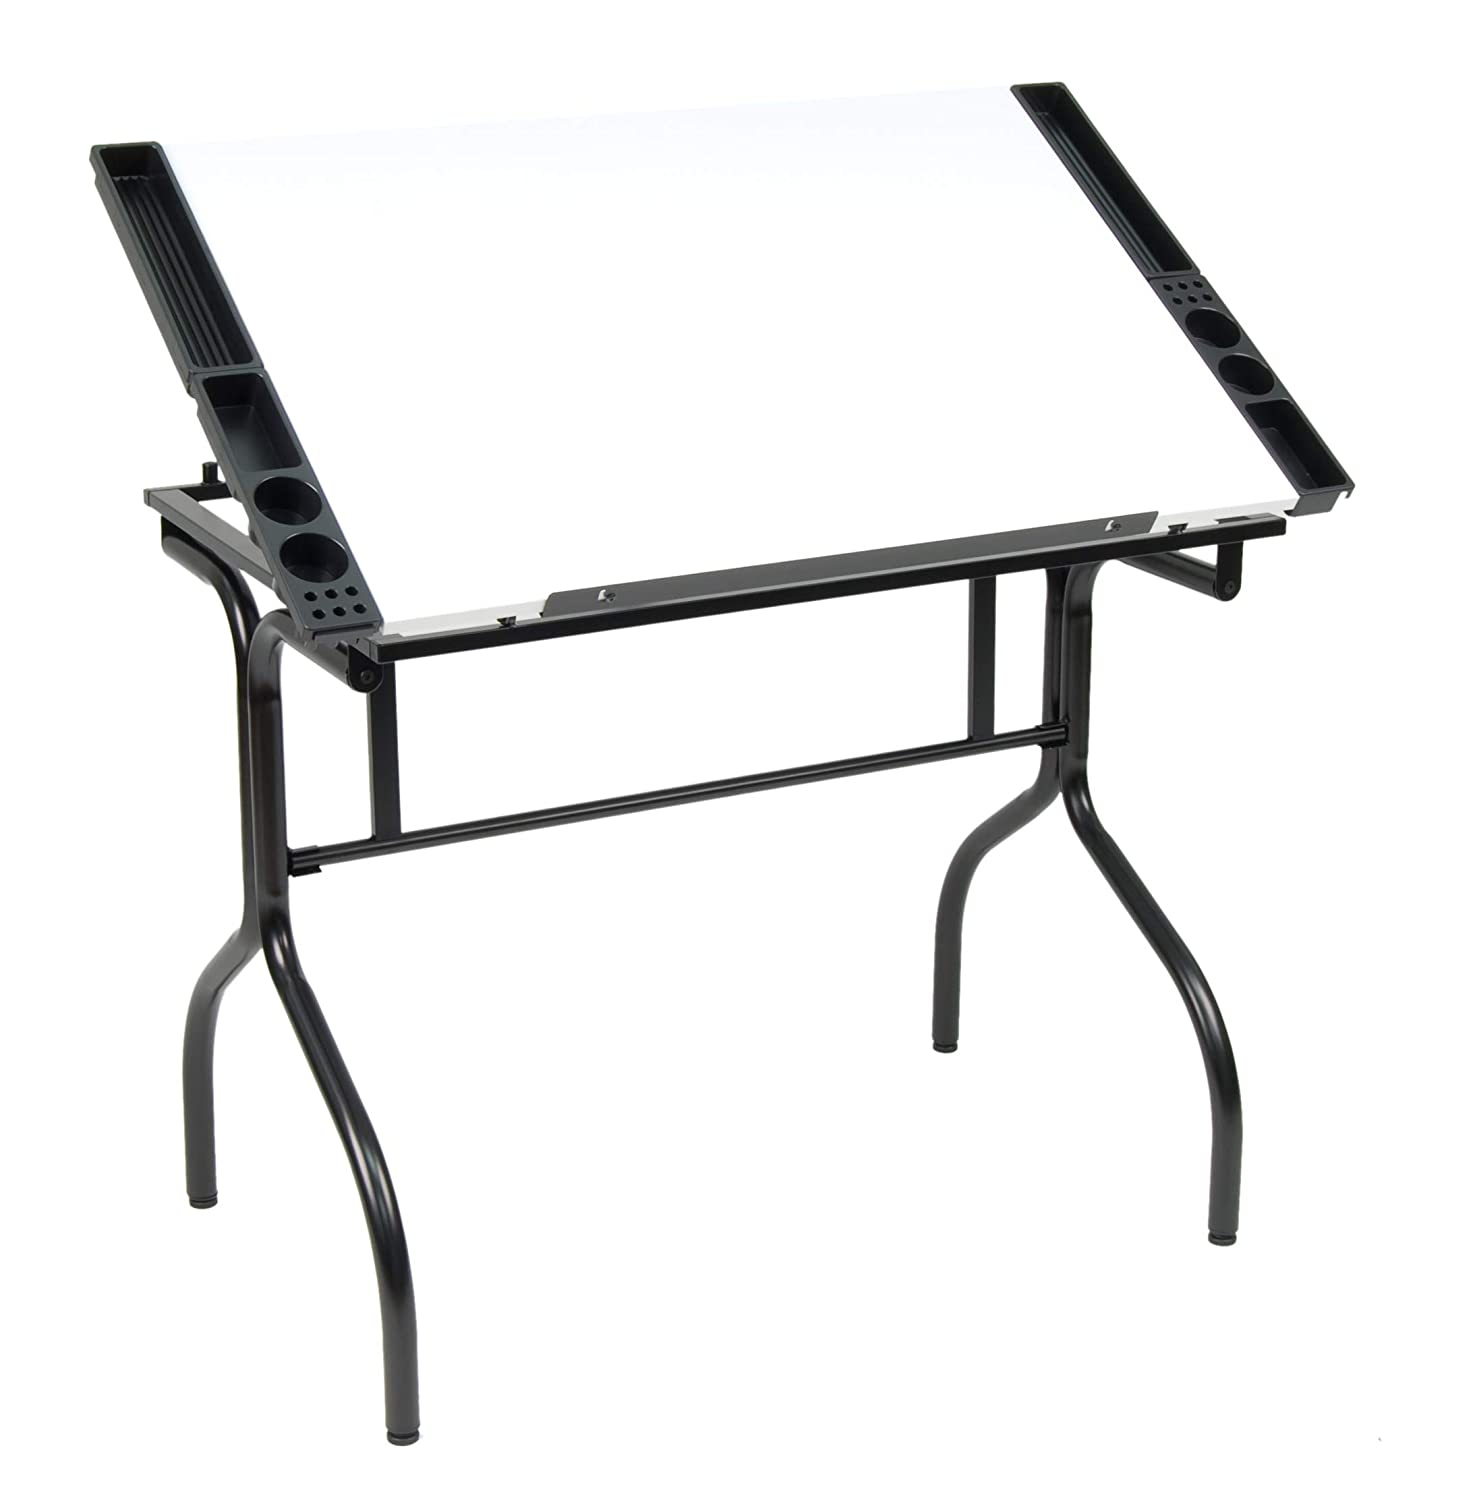 "Studio Designs Folding Modern Top Adjustable Drafting Table Craft Table Drawing Desk Hobby Table Writing Desk Studio Desk, 35.25"" W x 23.75"" D, Black / White"